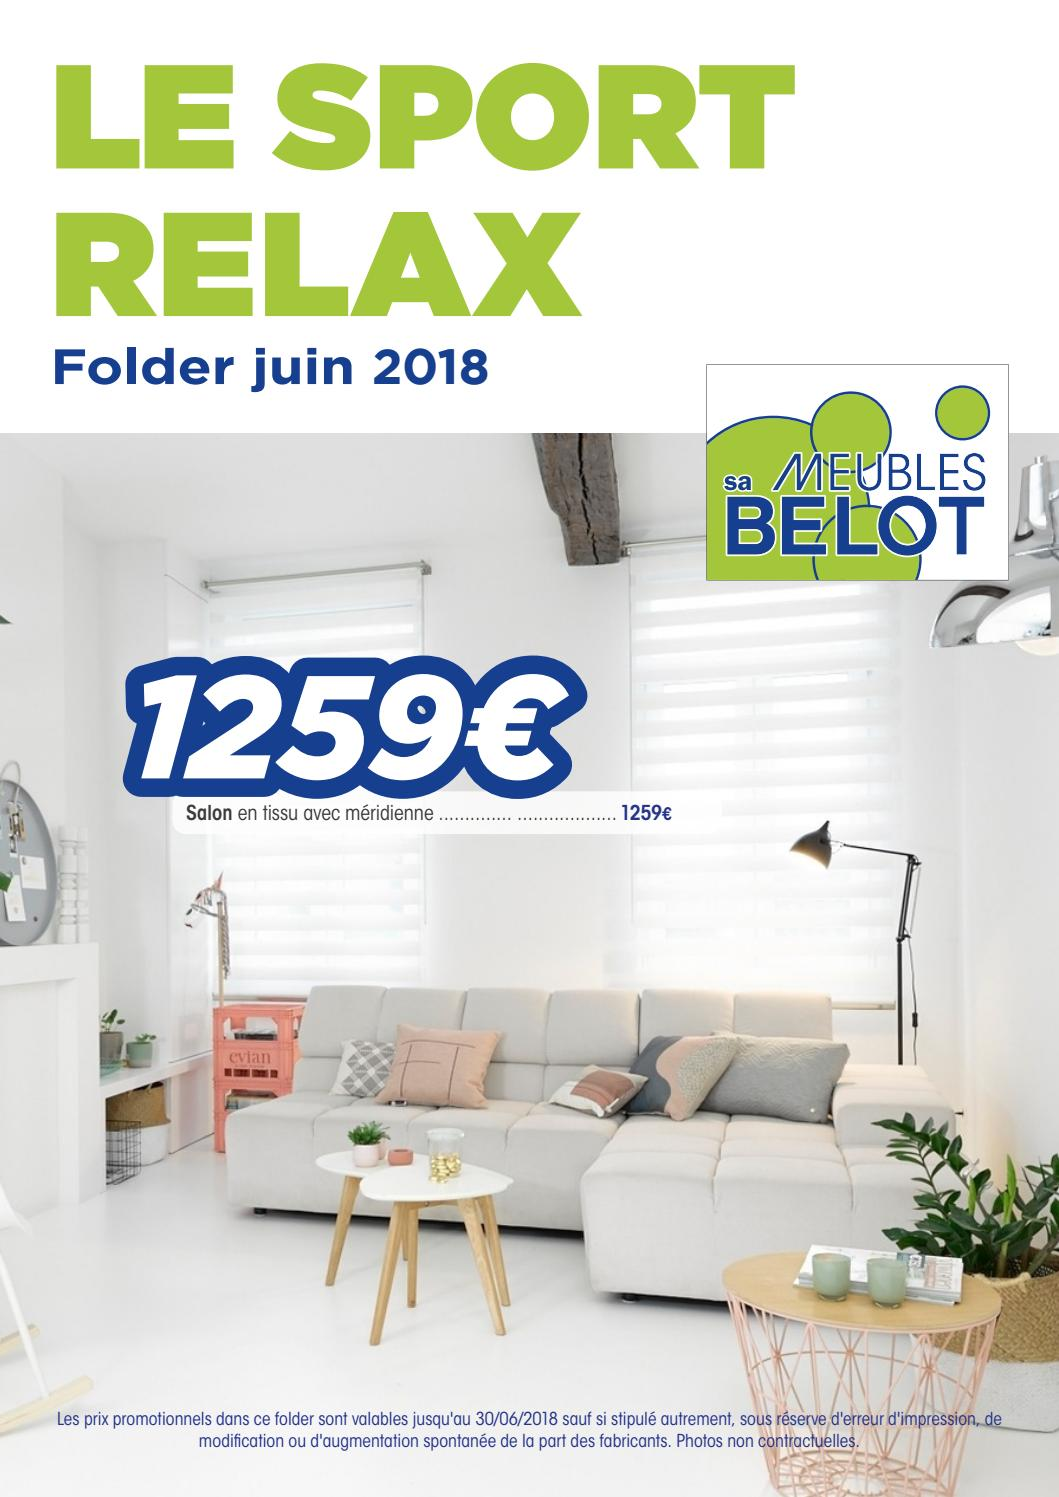 Pub Meubles Belot Belot Folders Sports Relax Juin 2018 By Meubles Belot Sa Issuu